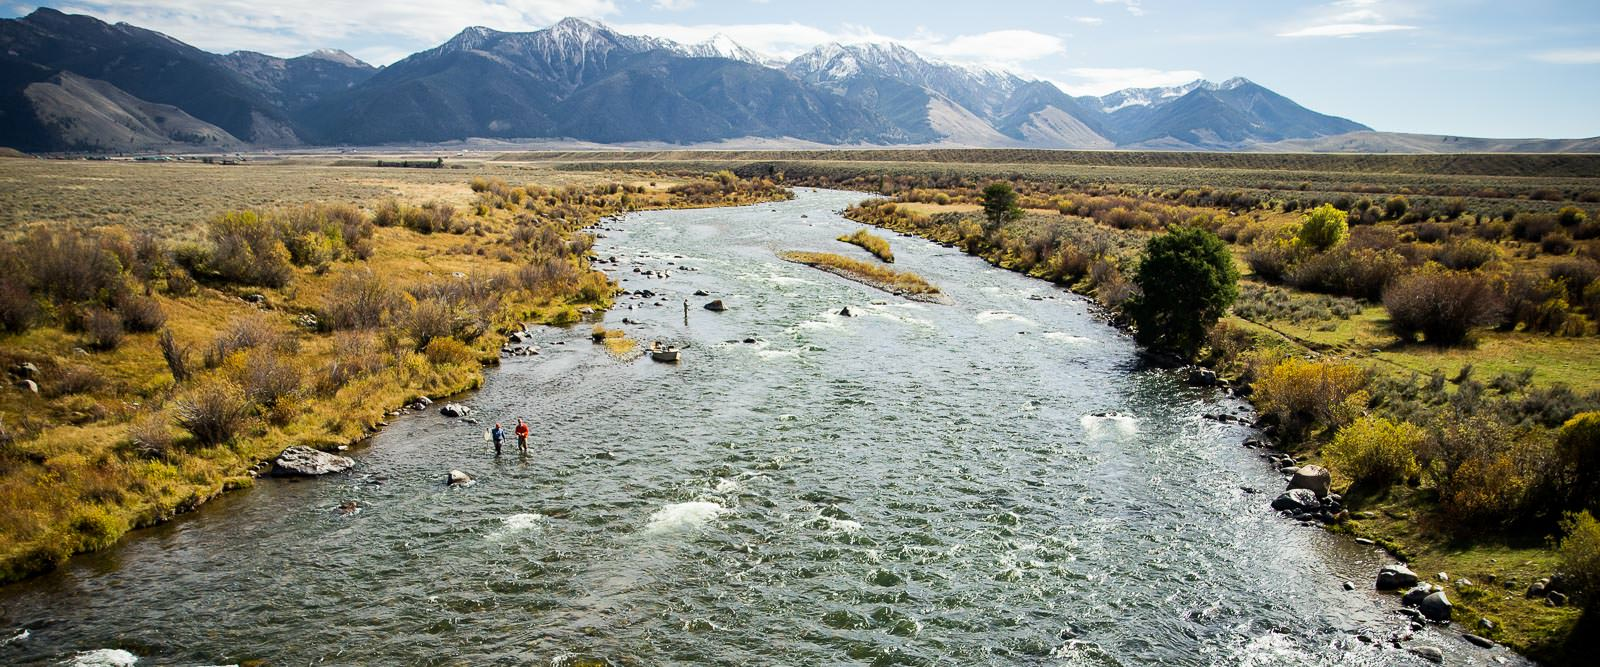 Montana Fly Fishing Trips | World Class Lodges & Expert Guides